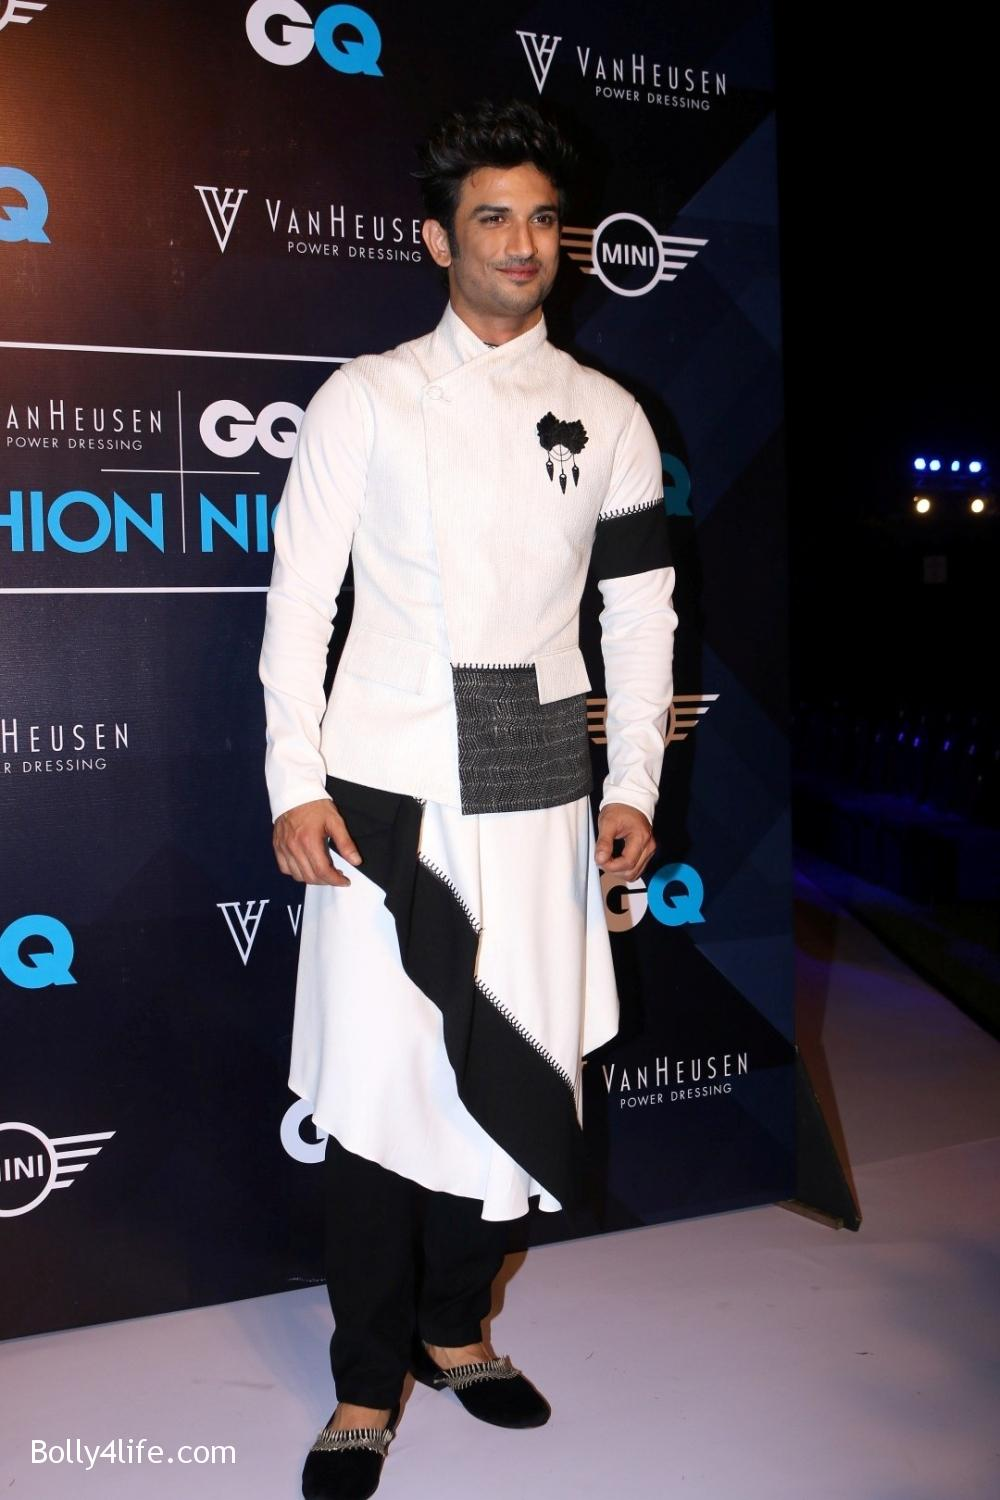 Sushant-Singh-Rajput-during-the-Van-Heusen-GQ-Fashion-Nights-in-Mumbai-3.jpg